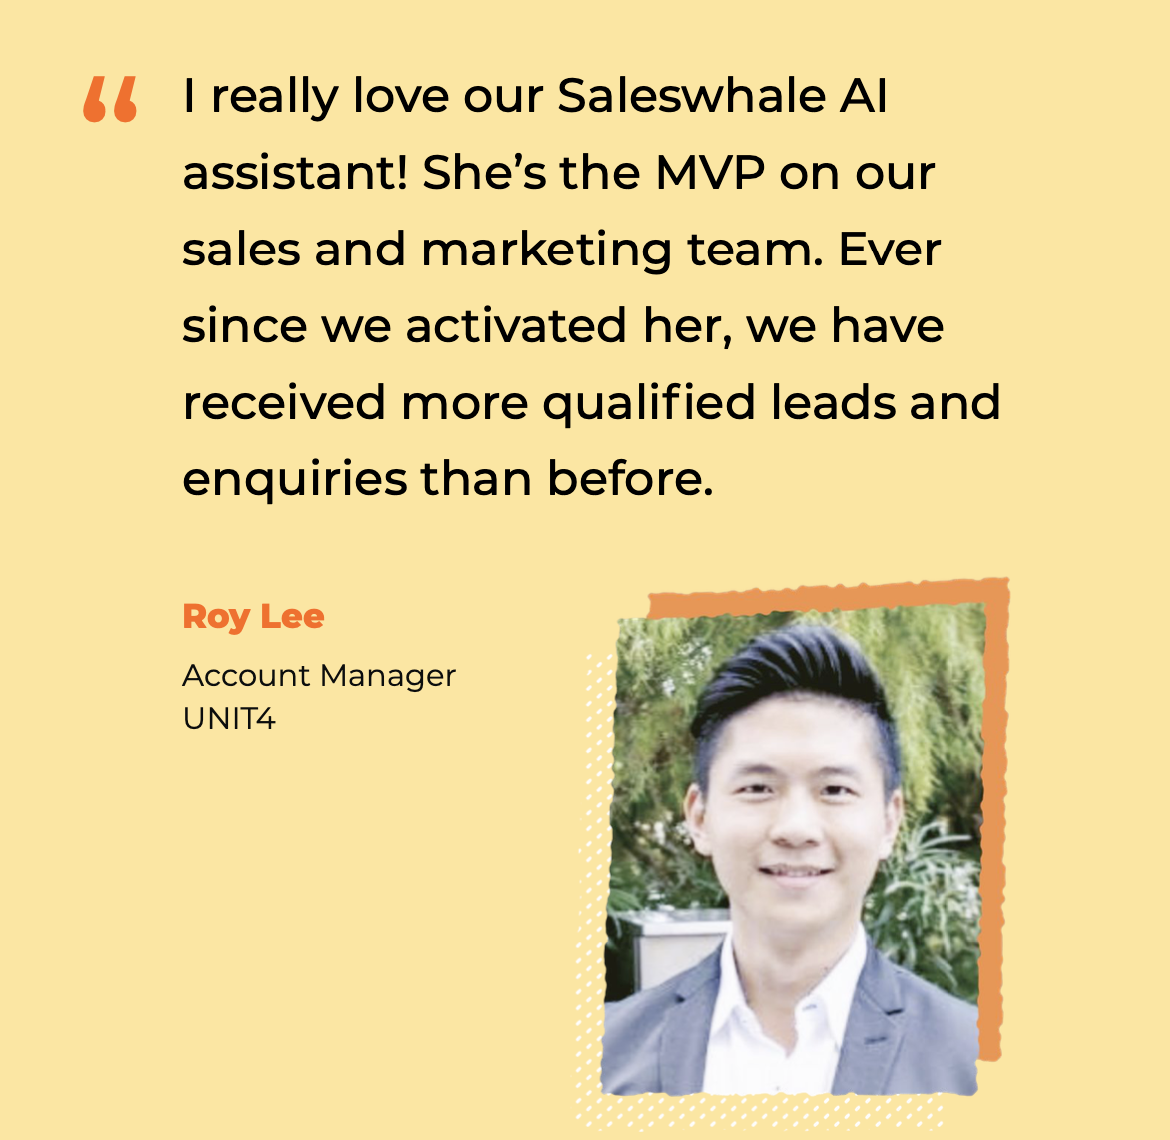 Customer testimonial for Saleswhale's AI Assistant